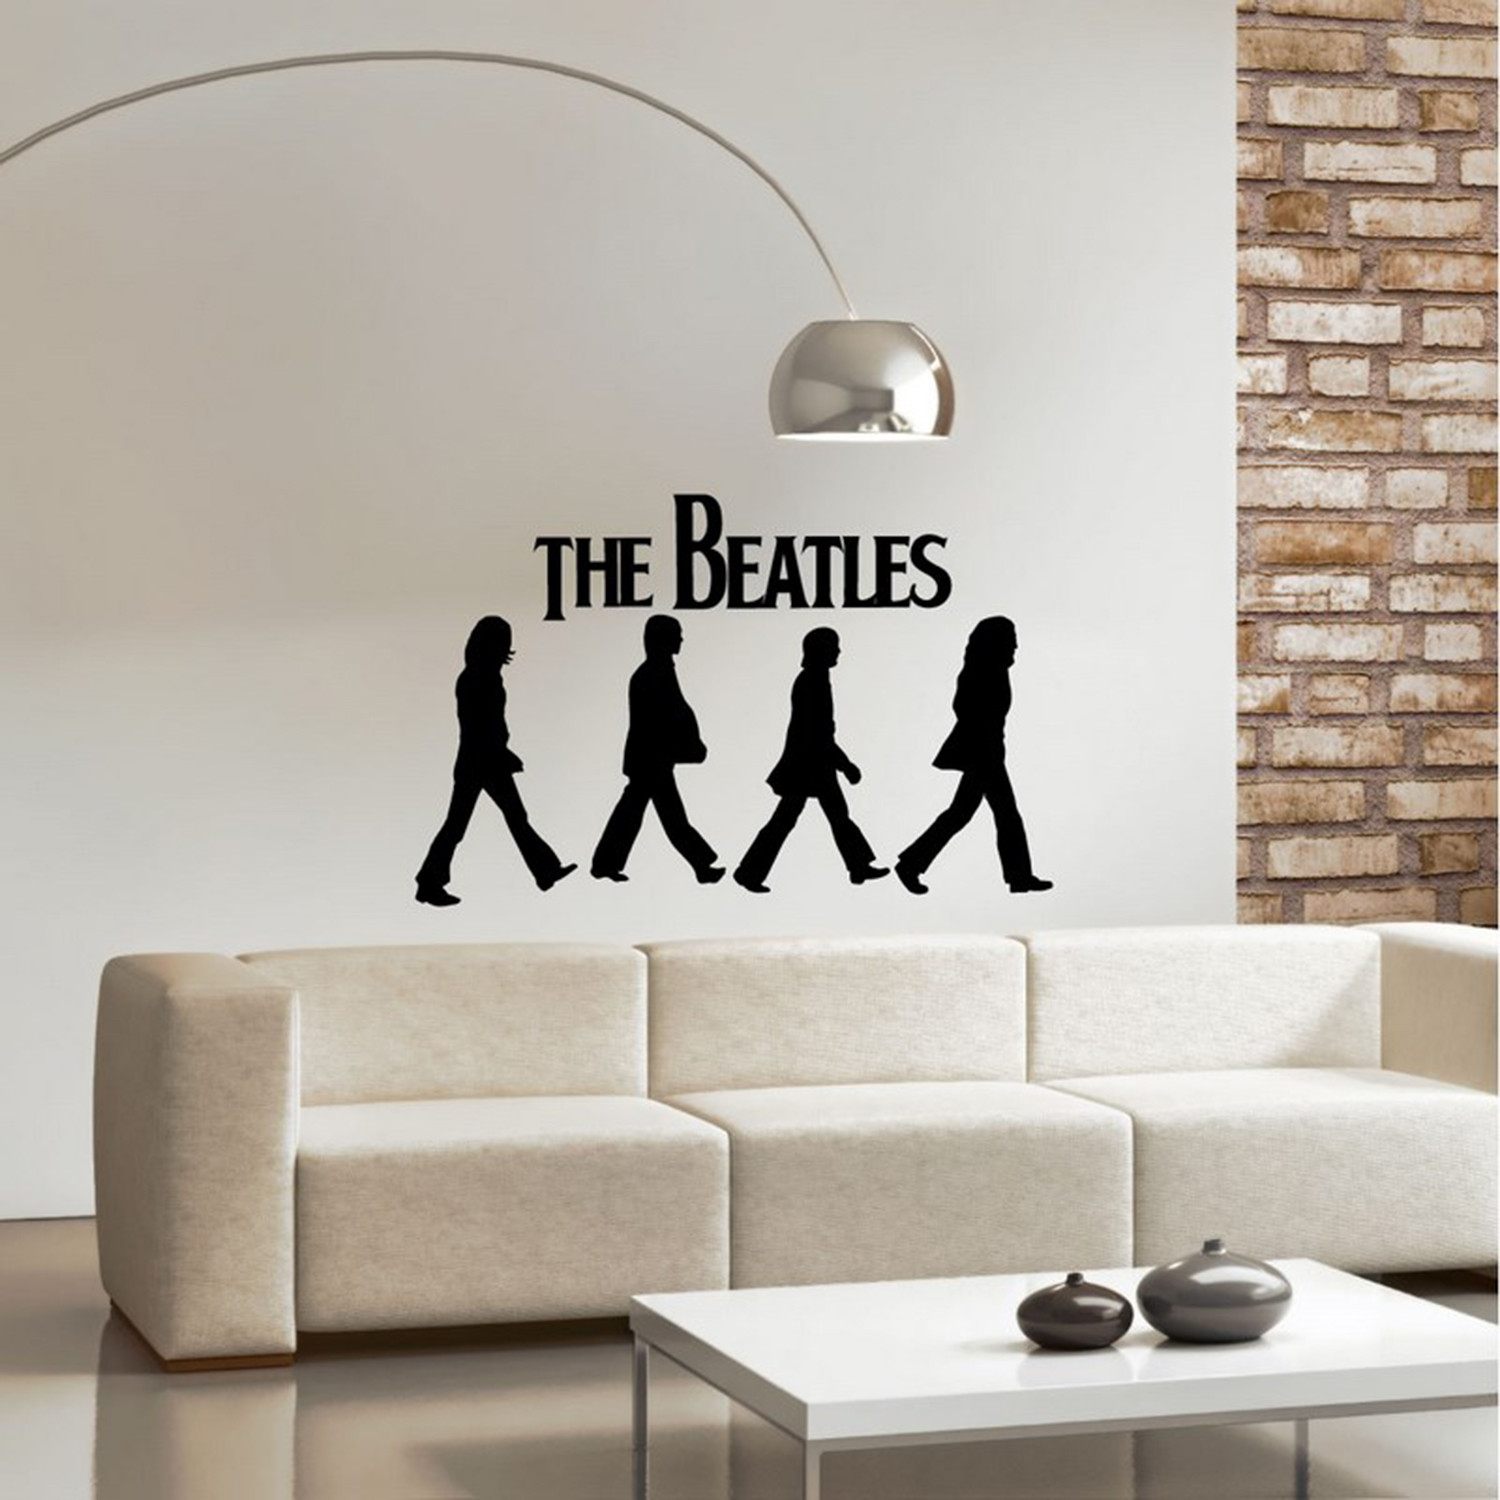 Ambiance sticker celebrity wall decals touch of modern abbey road amipublicfo Image collections